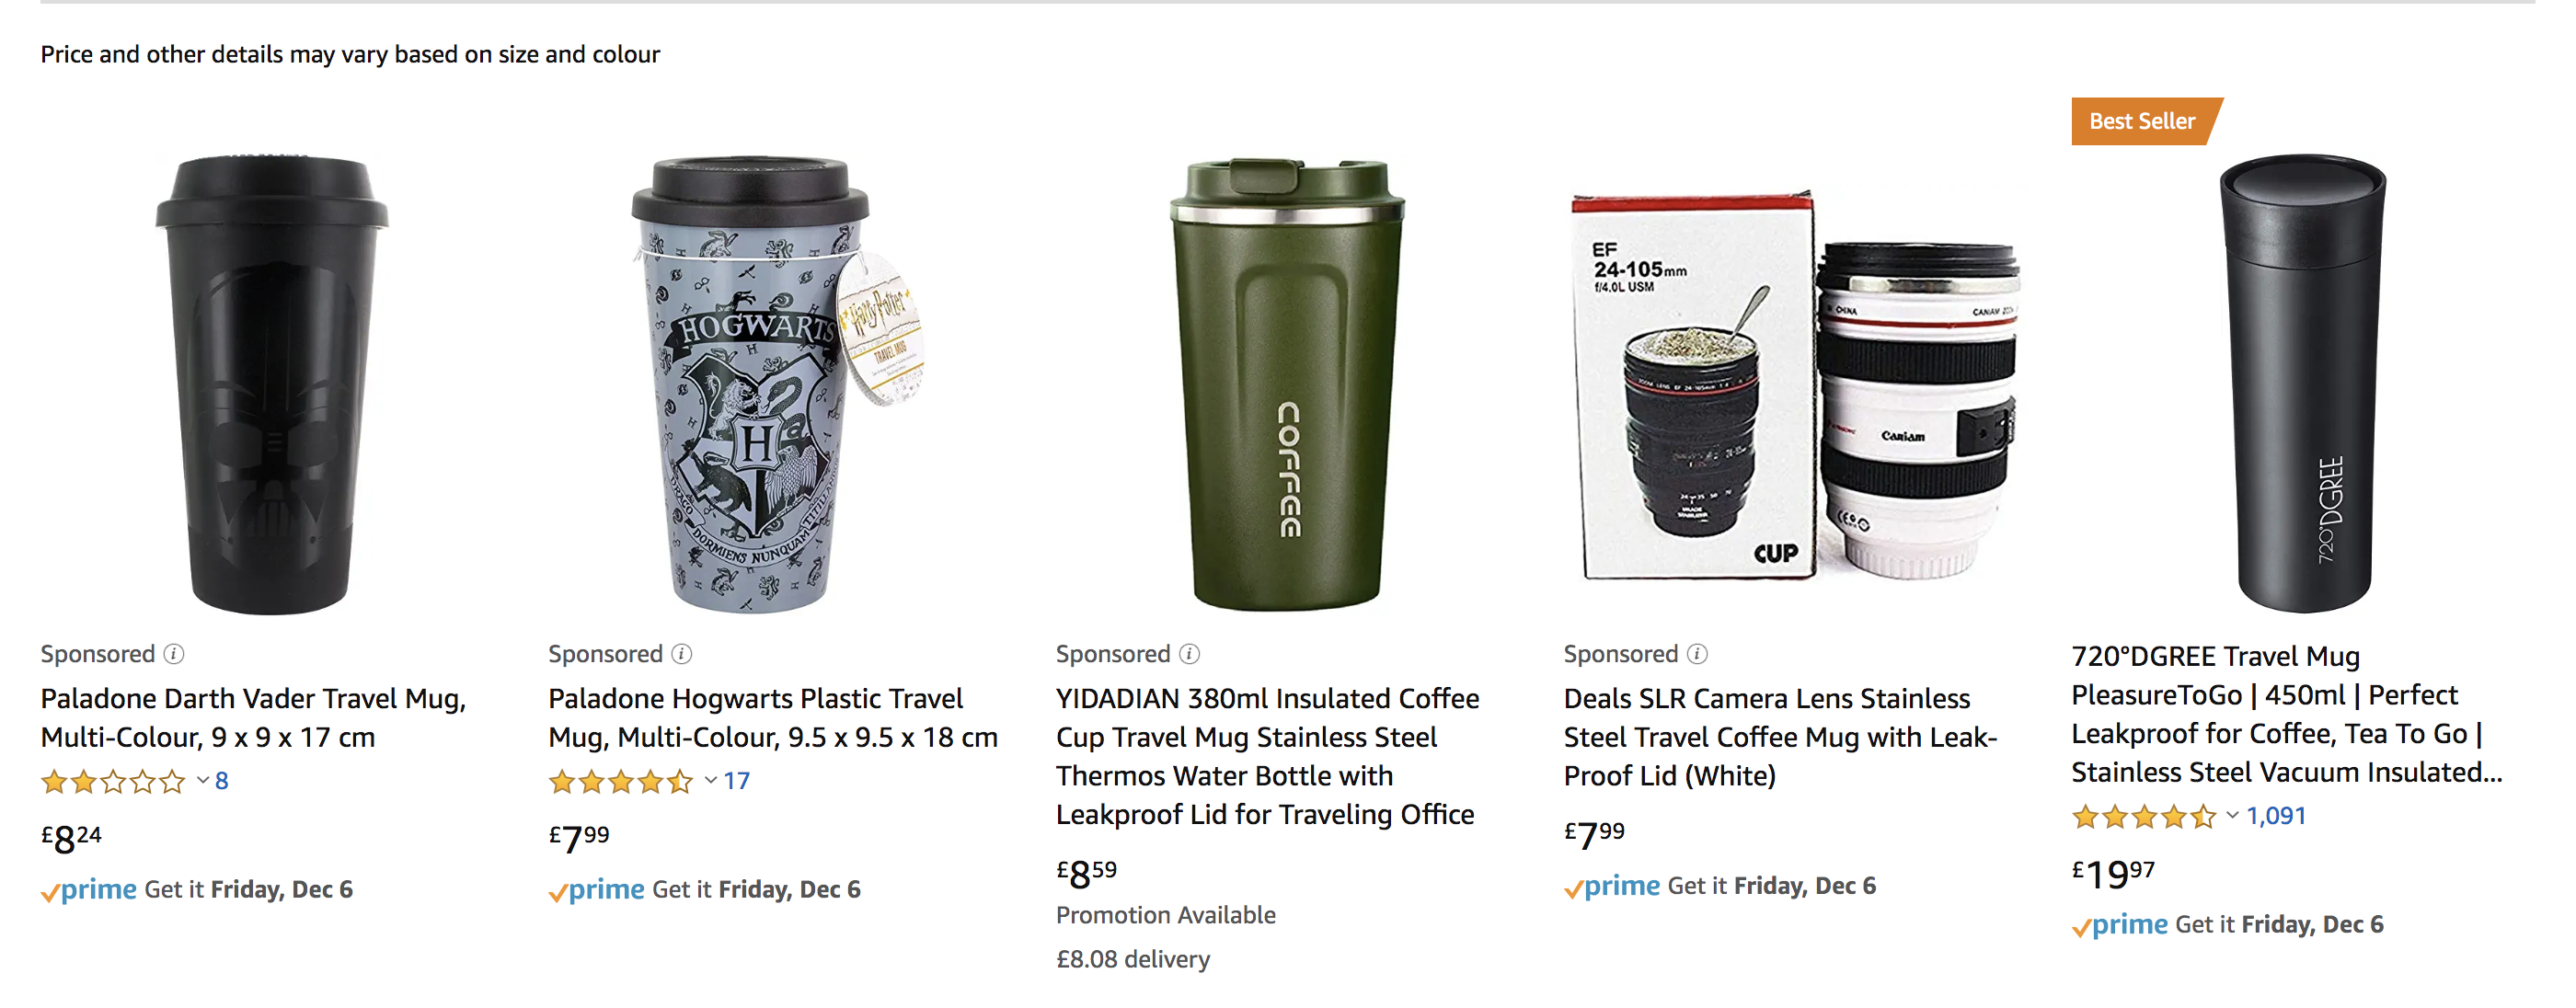 Sceenshot of sponsored coffee mugs on Amazon